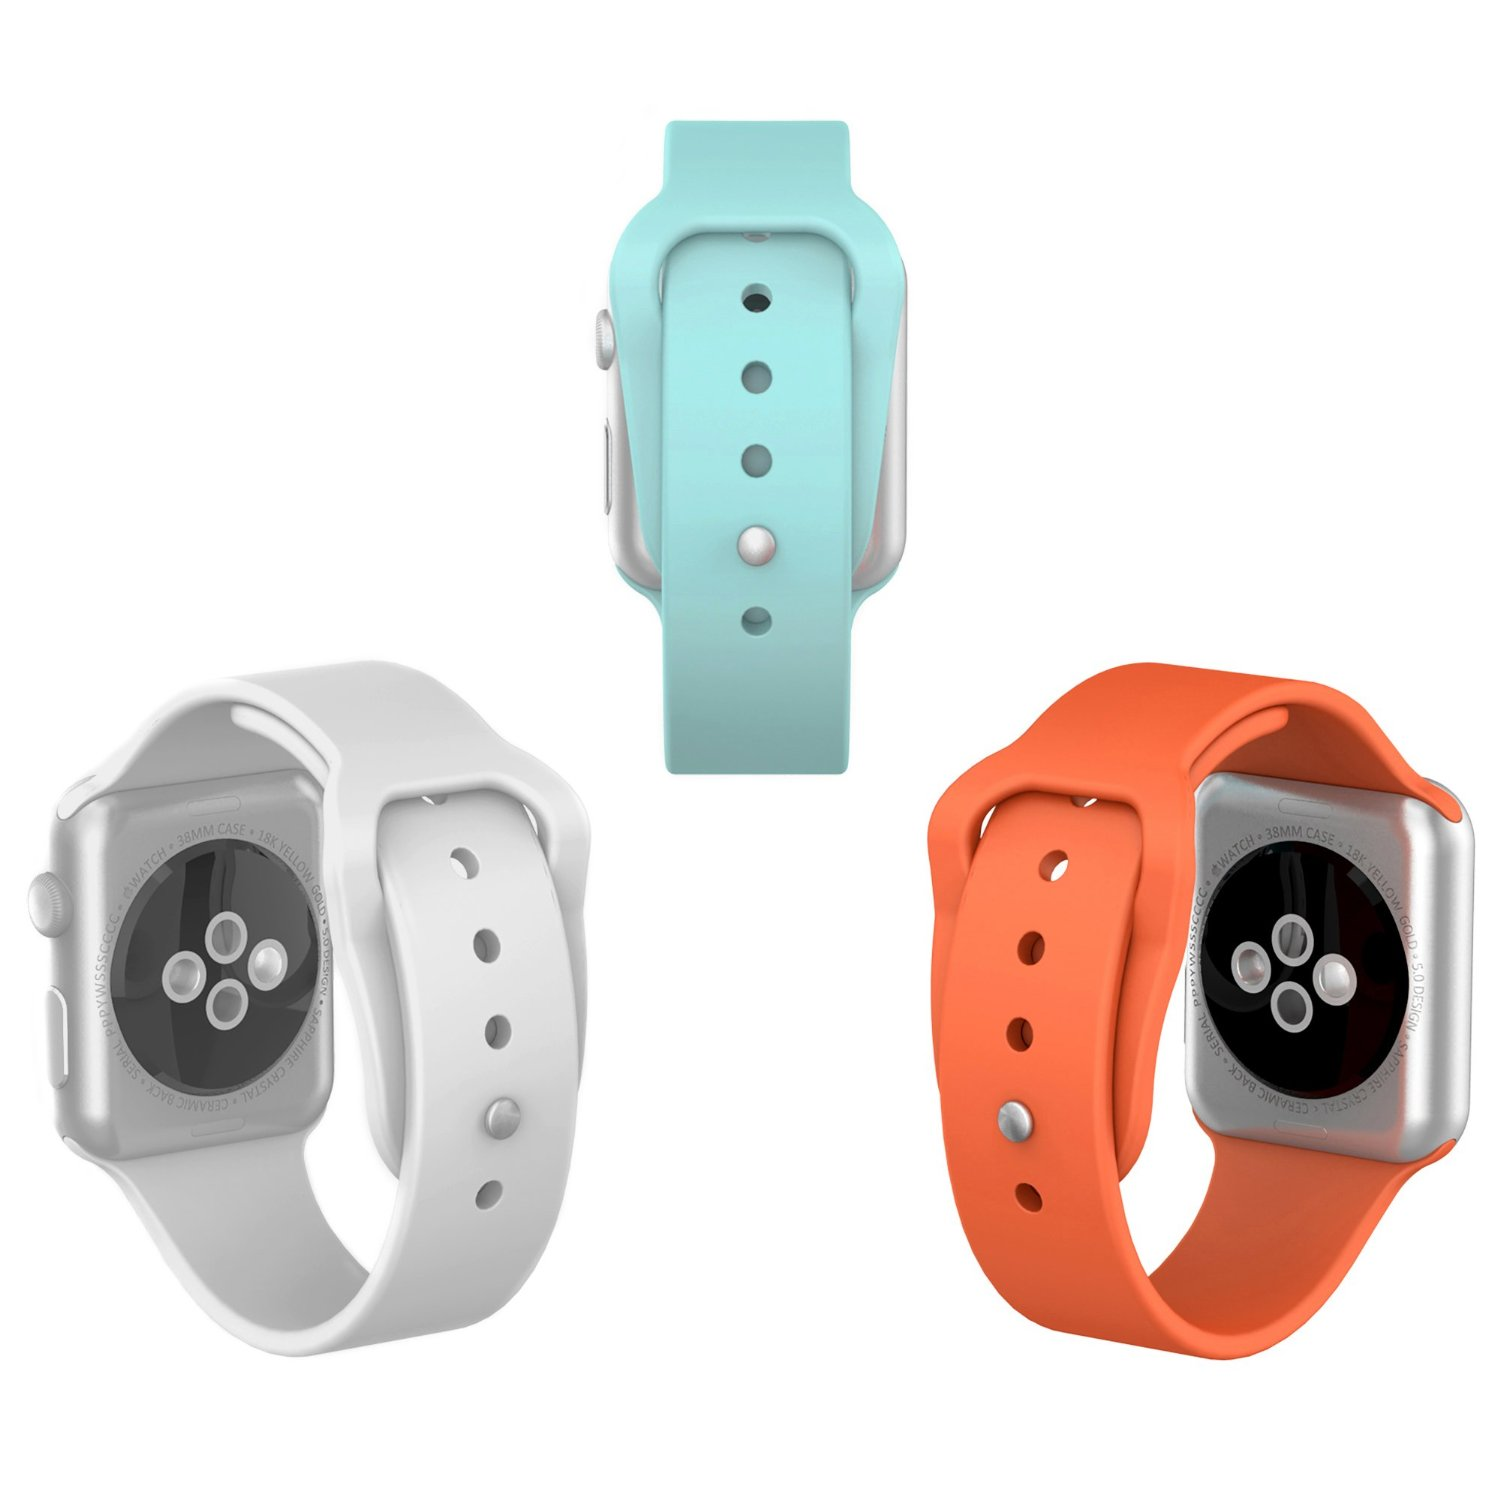 Apple Watch Sport Band 38mm, iOrange-E 3 Pack of Soft Silicone iWatch Band 38mm Replacement Watch Band with 3 Pieces Include 2 Lengths for Each Color, Turquoise, OrangeRed, White